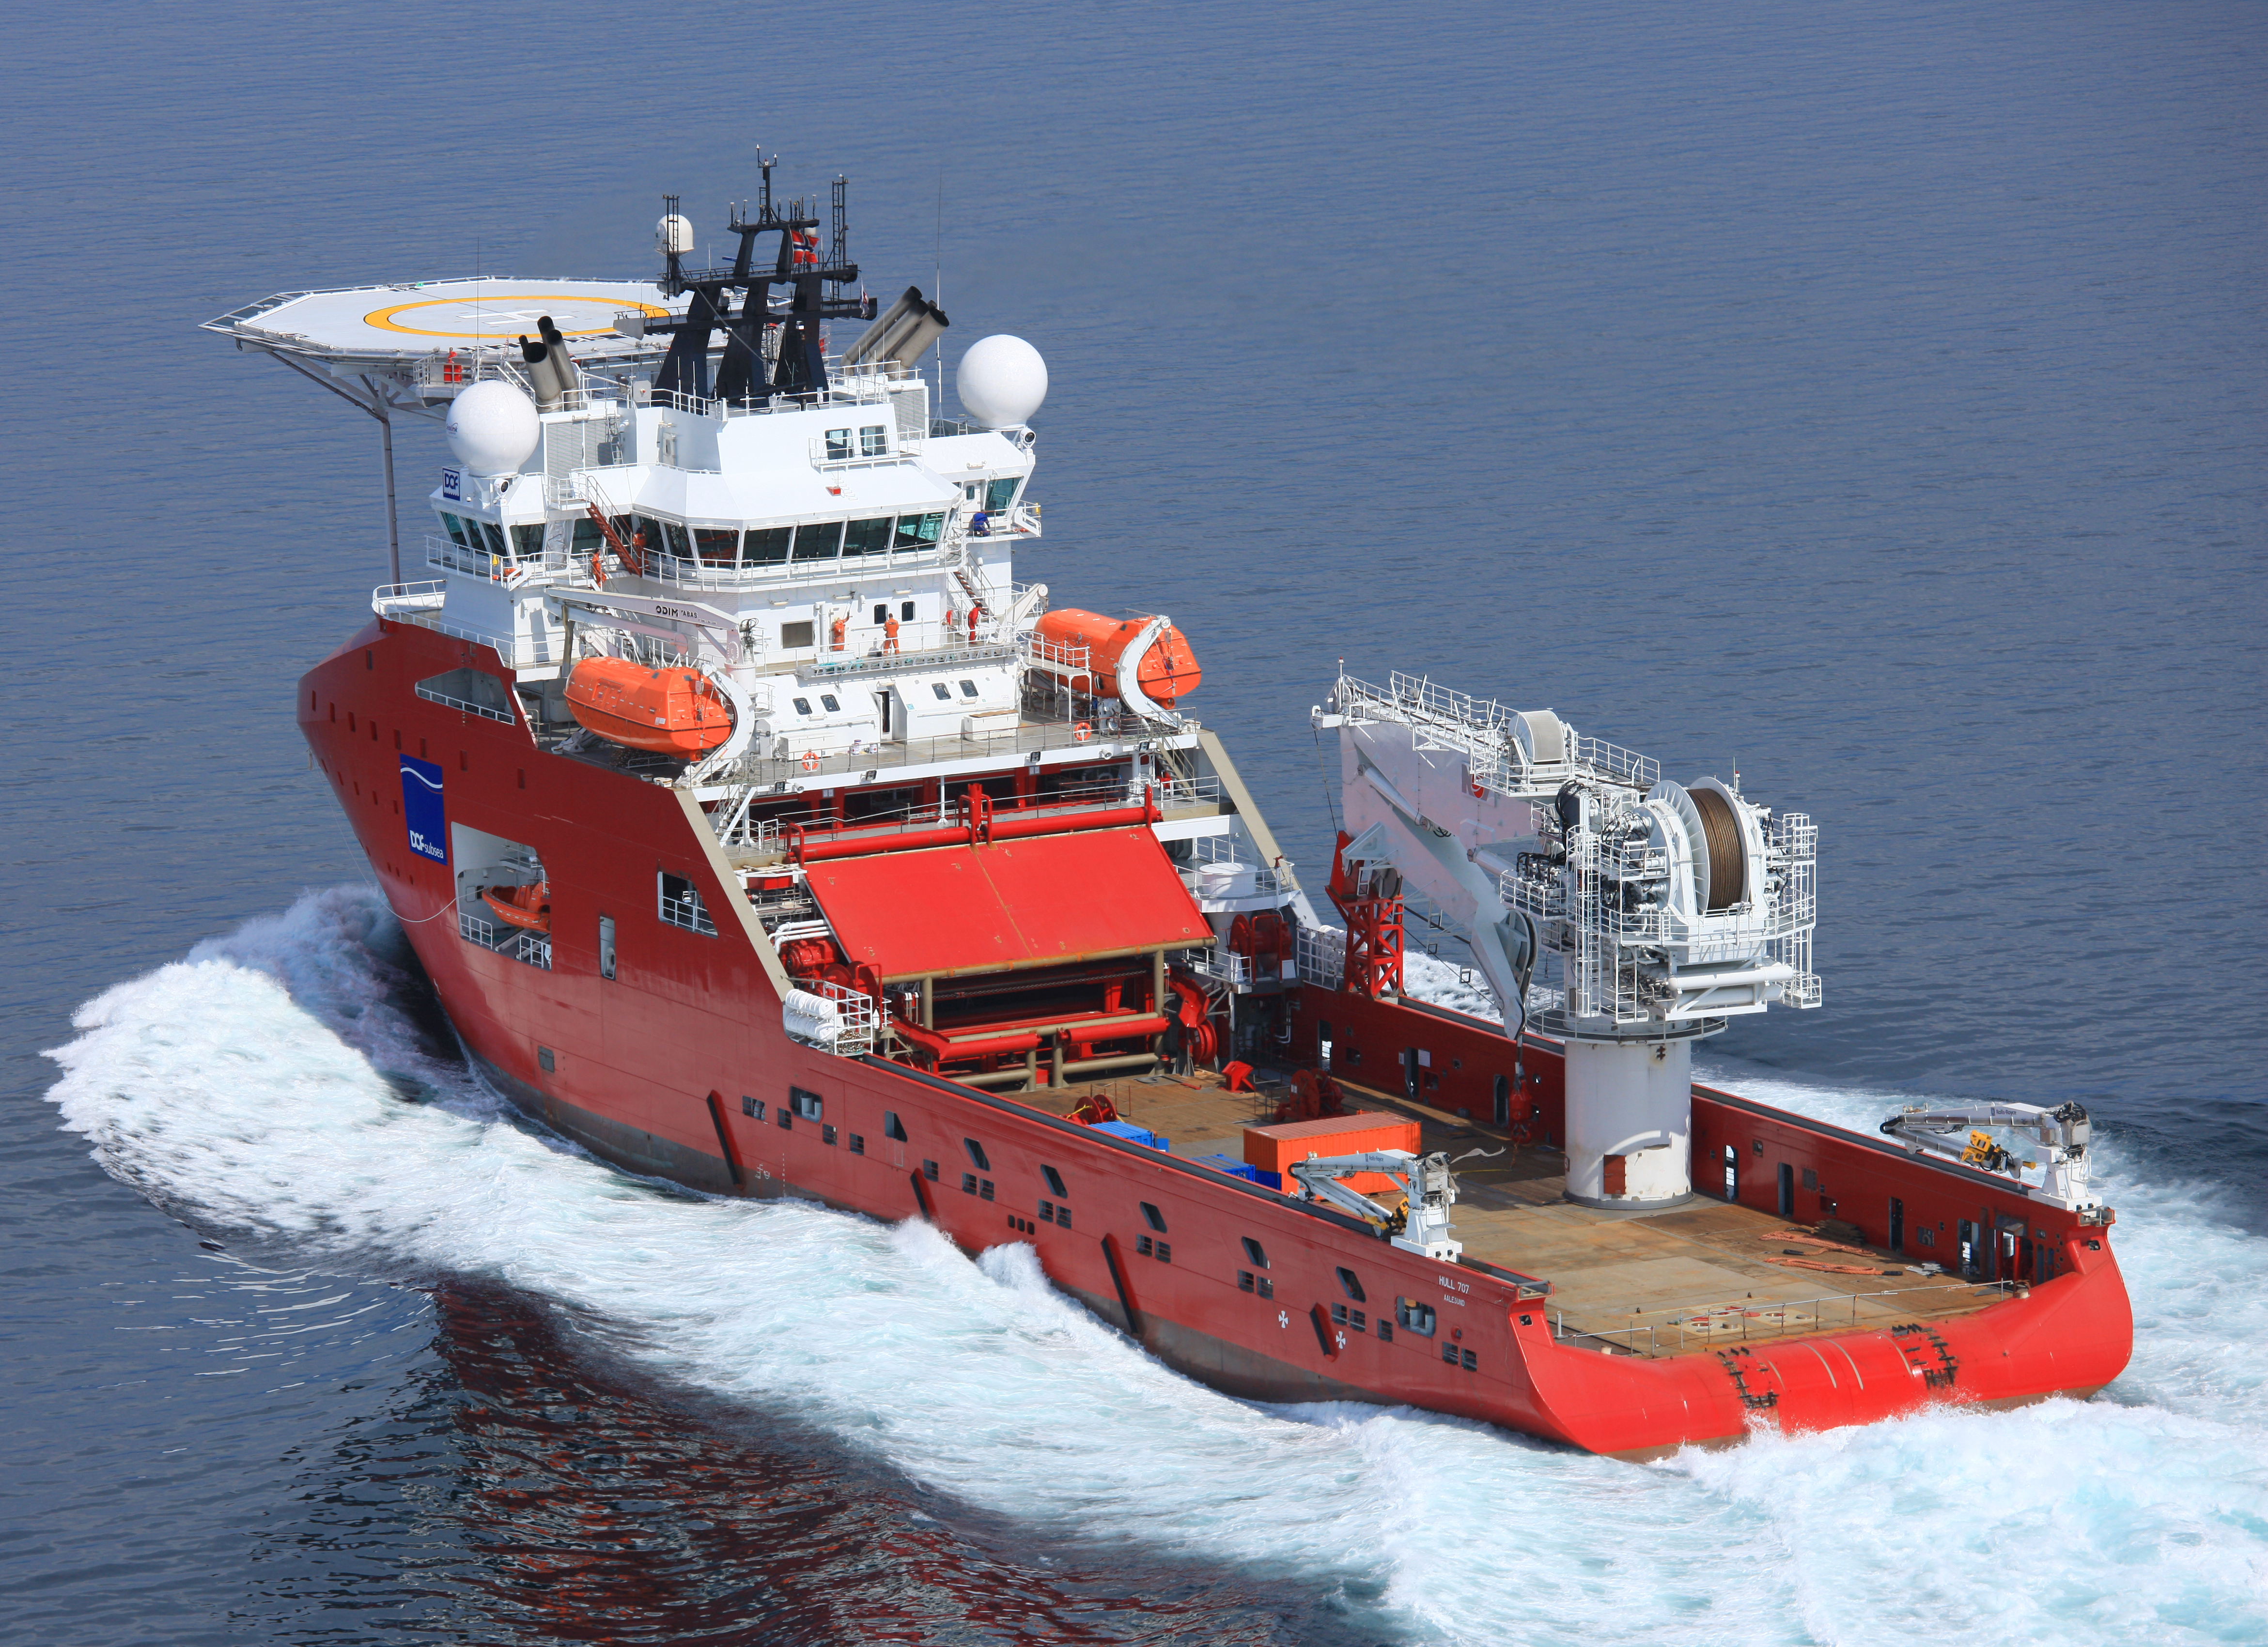 DOF Subsea UK has secured a contract with Hess to provide diver-less Decommissioning services from its new multipurpose support vessel, the Skandi Skansen . Handout pic from the firm.